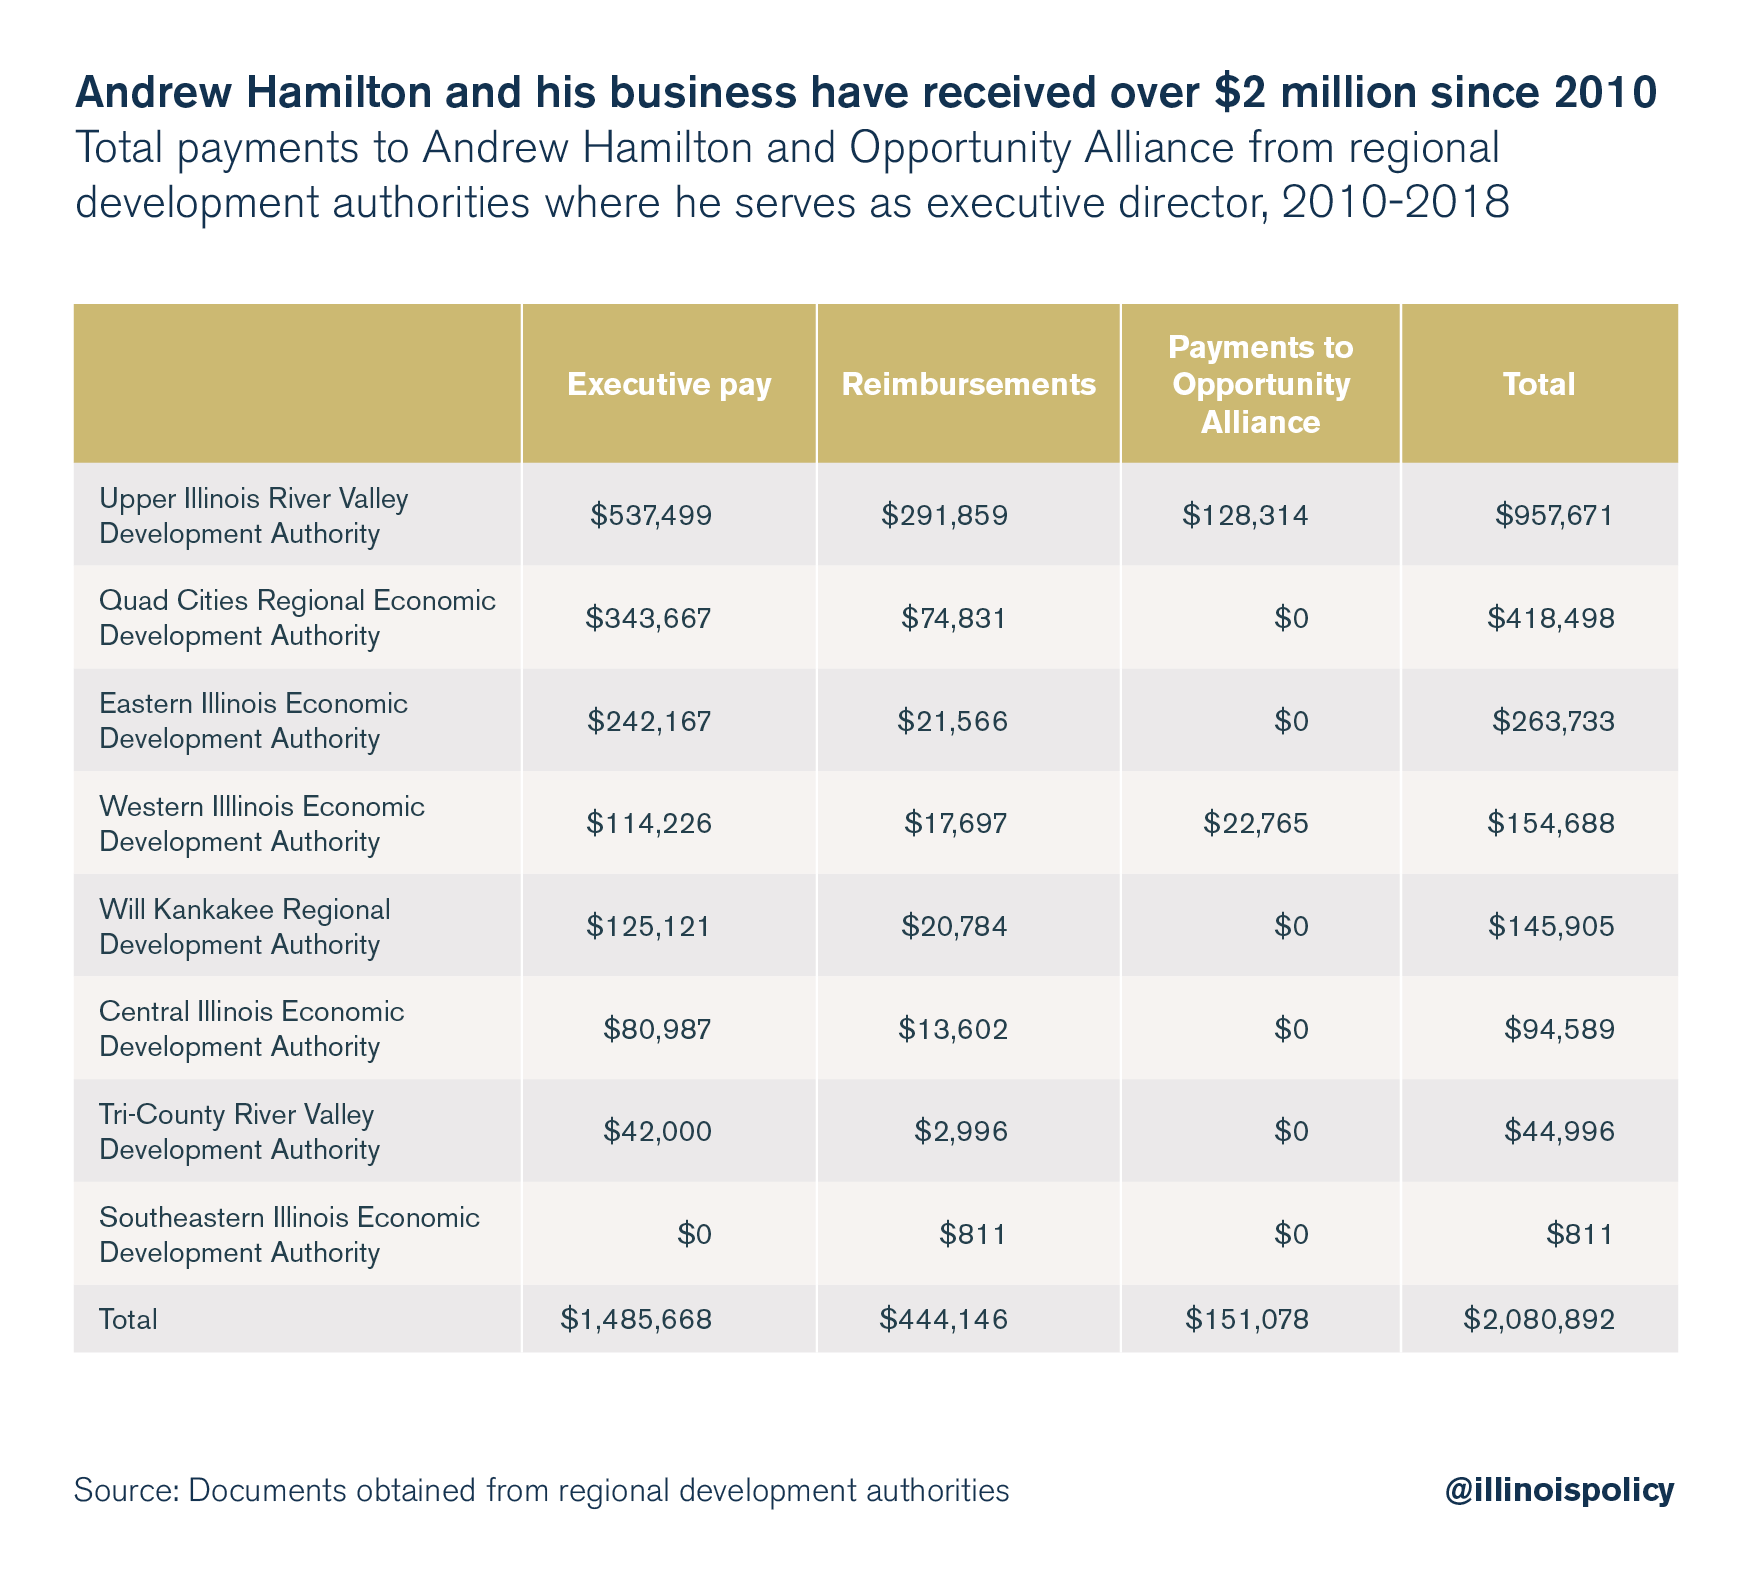 Andrew Hamilton and his business have received over $2 million since 2010